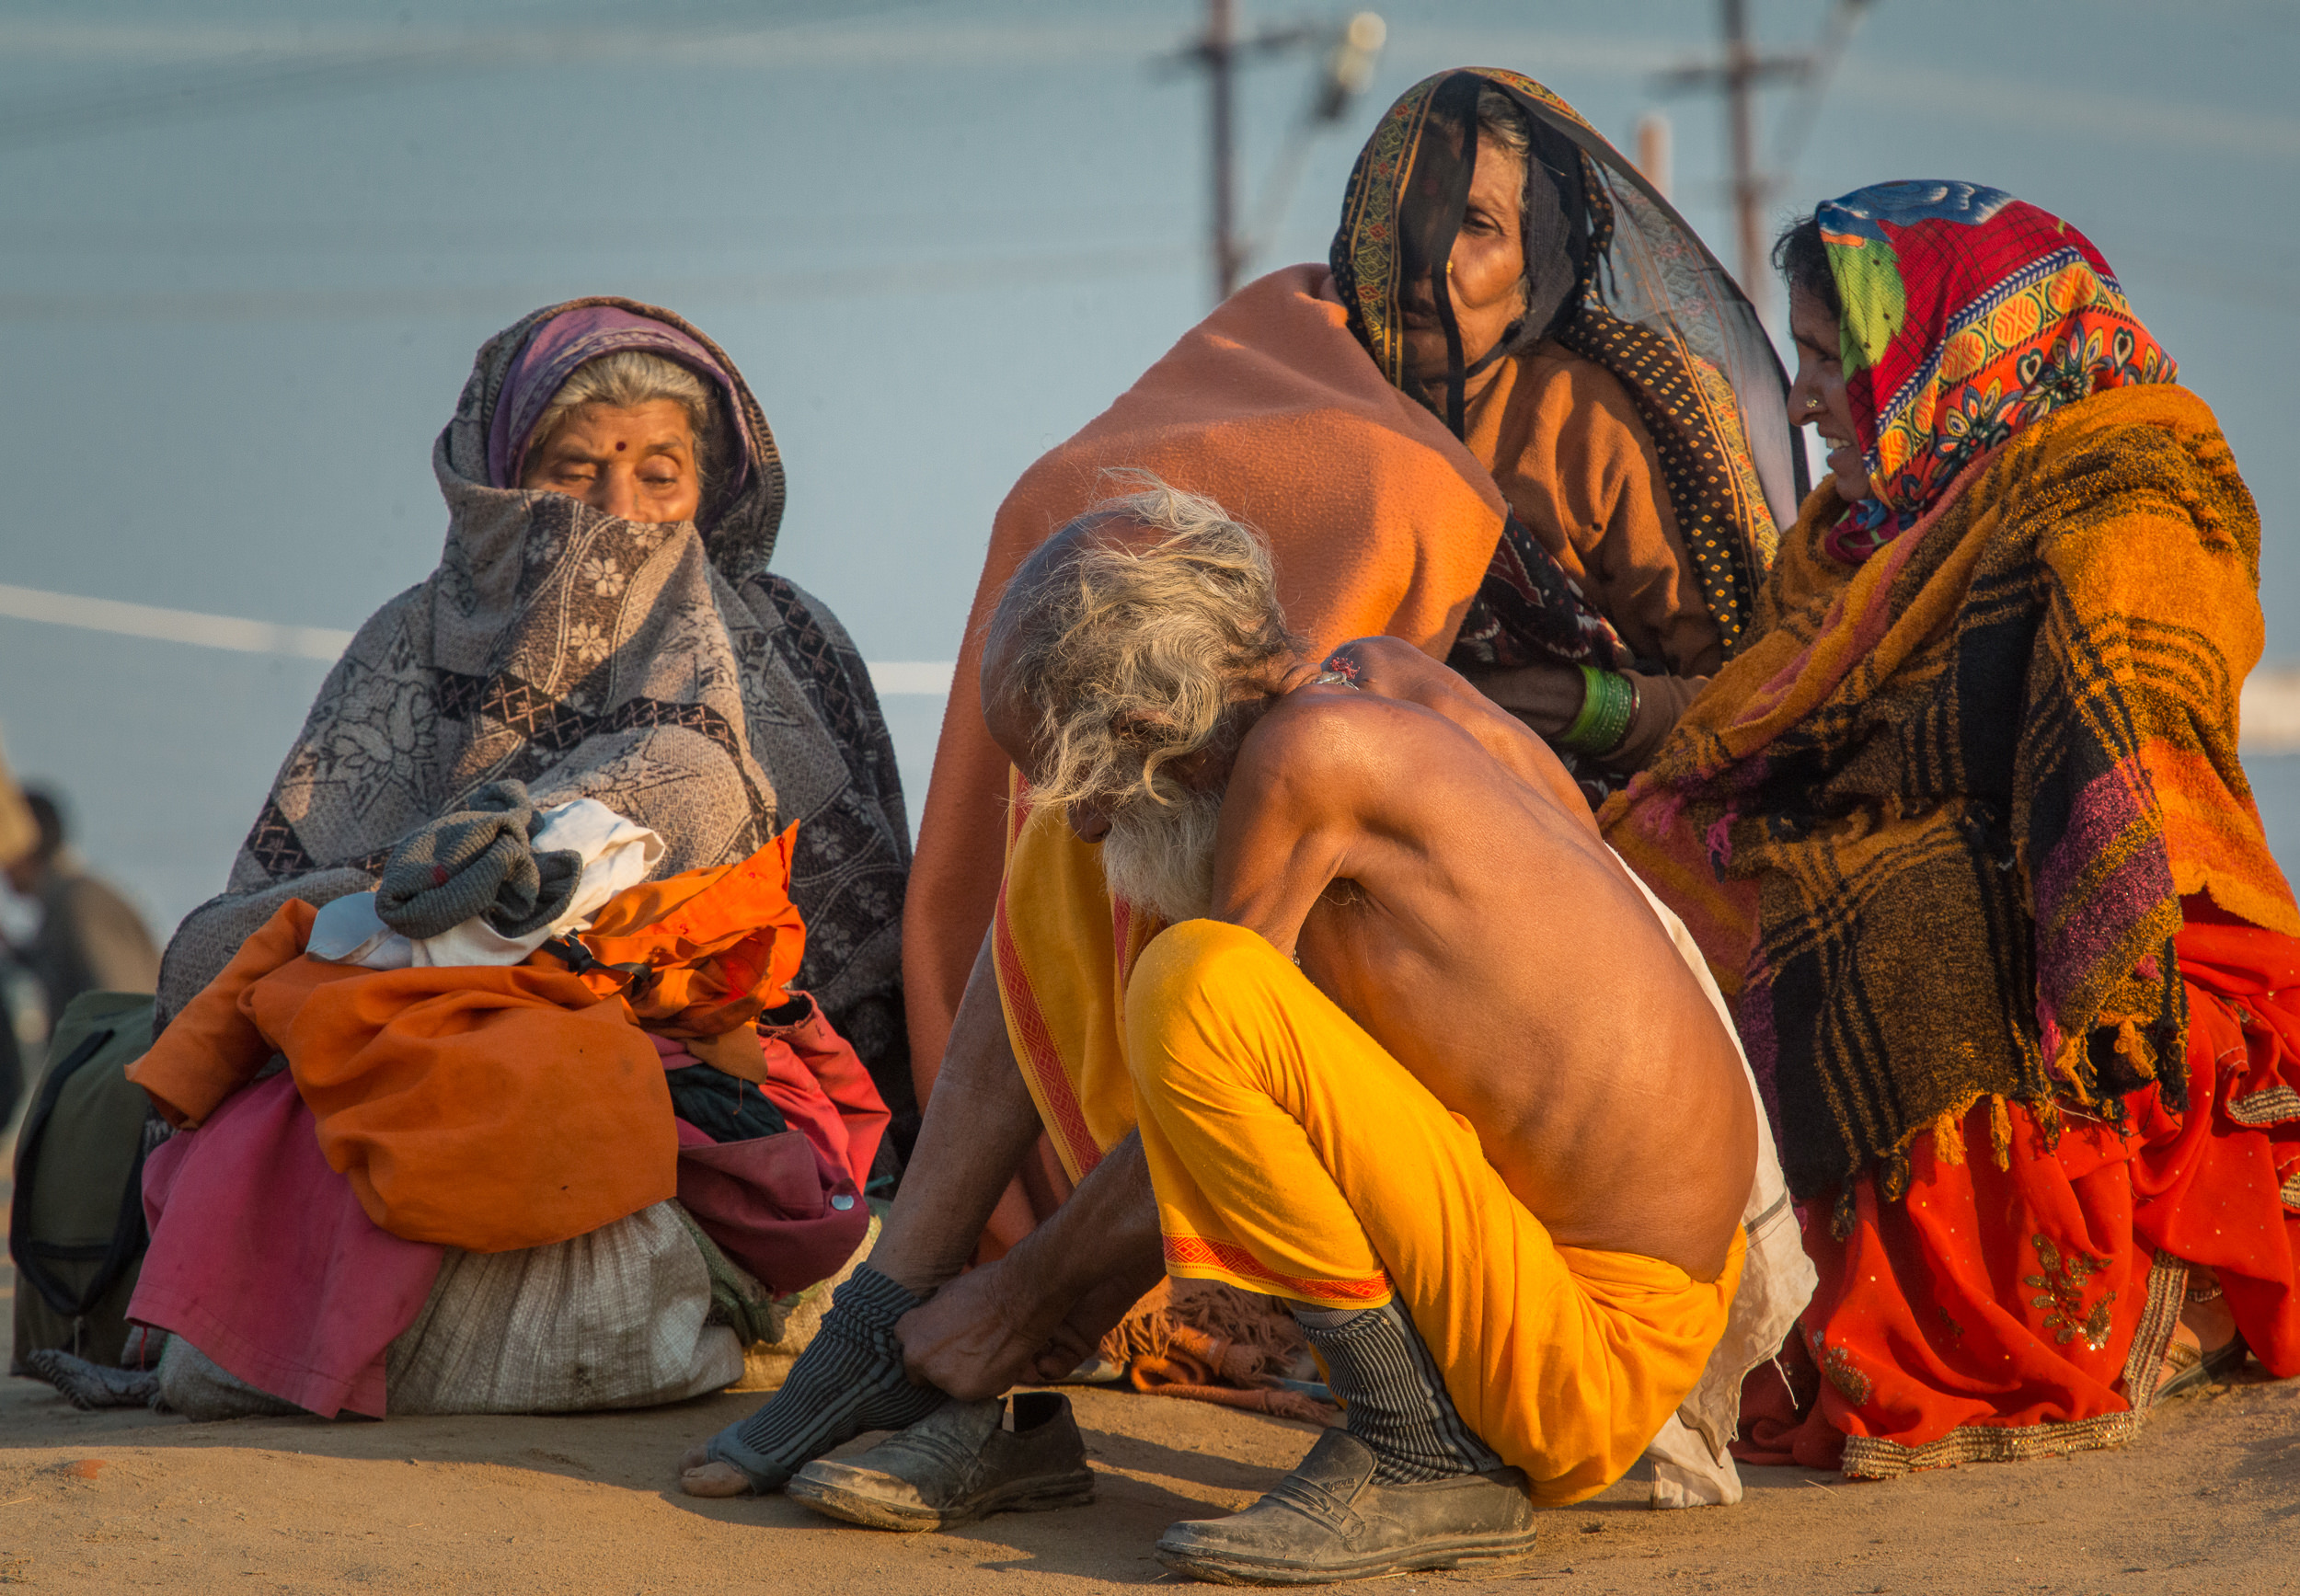 [2013-02-08] India Day12 Kumbh 4 (0709) NIKON D800.jpg